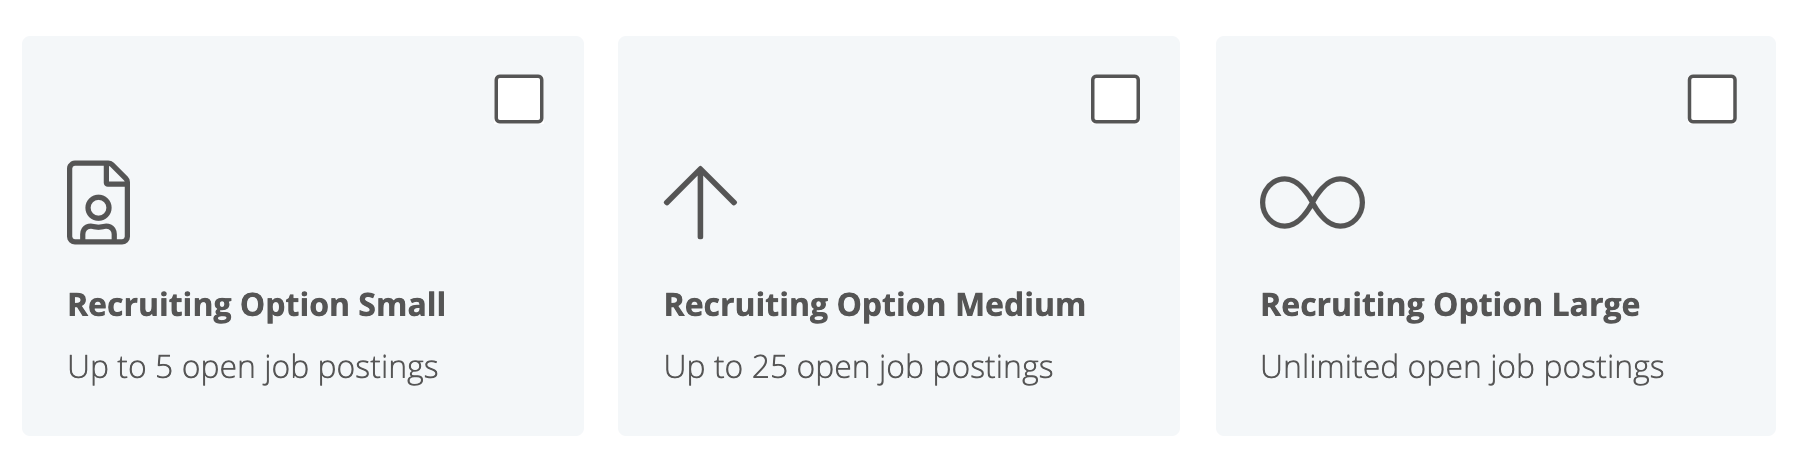 packages-recruiting_en-us.png